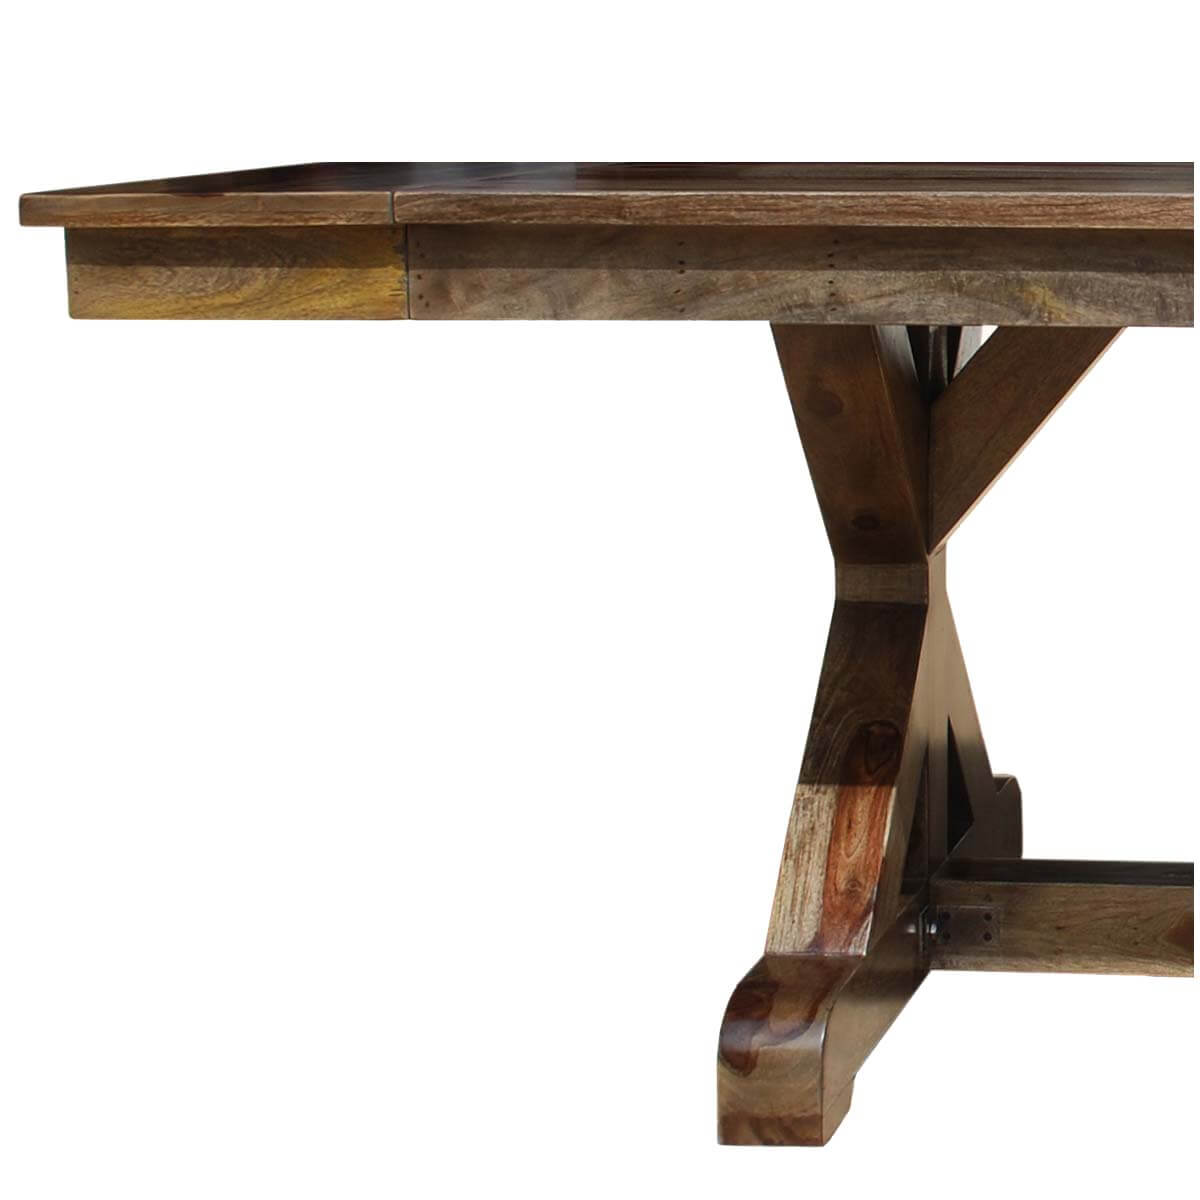 McKay X Base Solid Wood Rustic Dining Table w Extension : 44224 from www.sierralivingconcepts.com size 1200 x 1200 jpeg 79kB